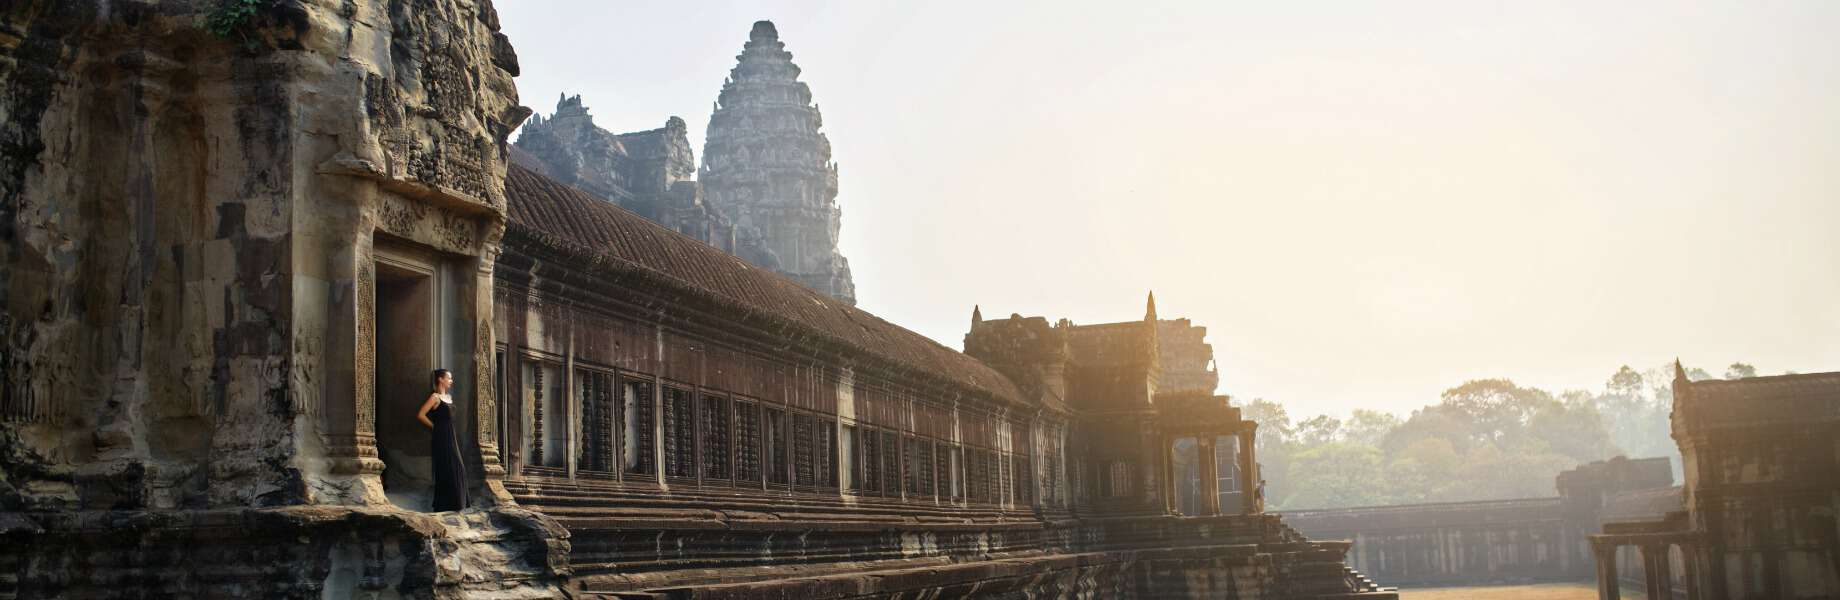 HIlltribes Ancient Culture - Angkor Wat Siem Reap